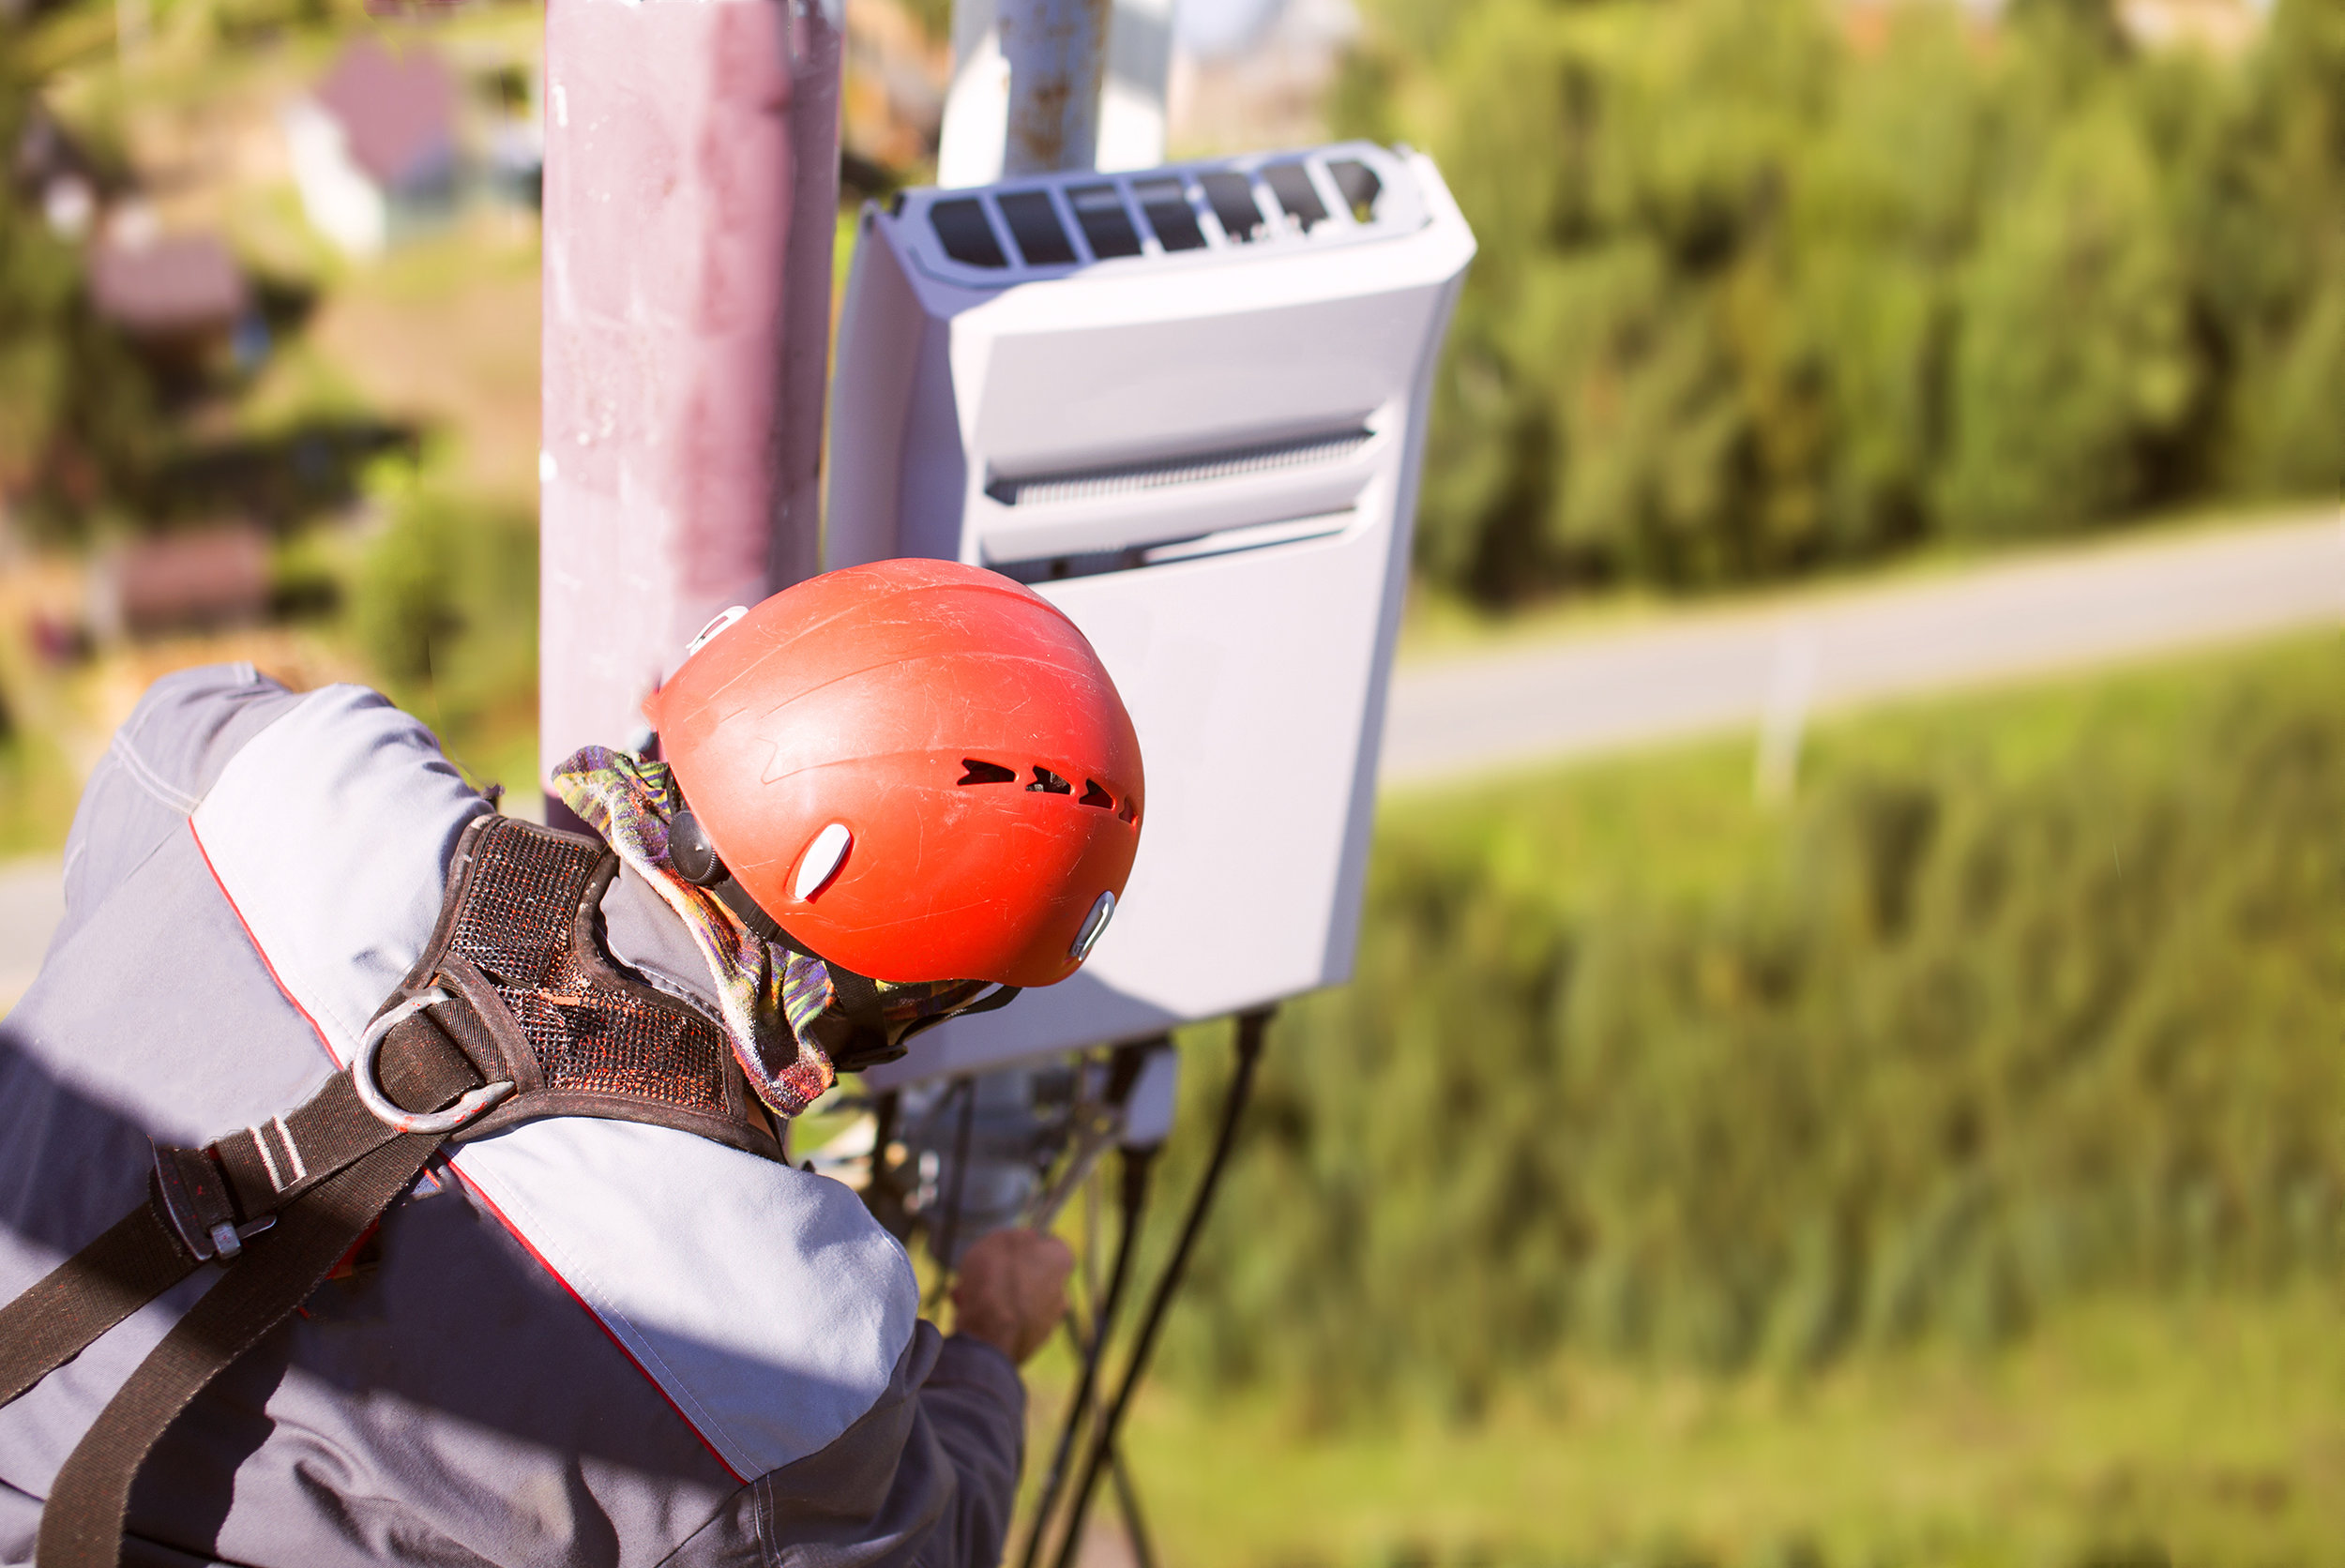 About Us - We provide telecoms infrastructure as a service throughout the United Kingdom.